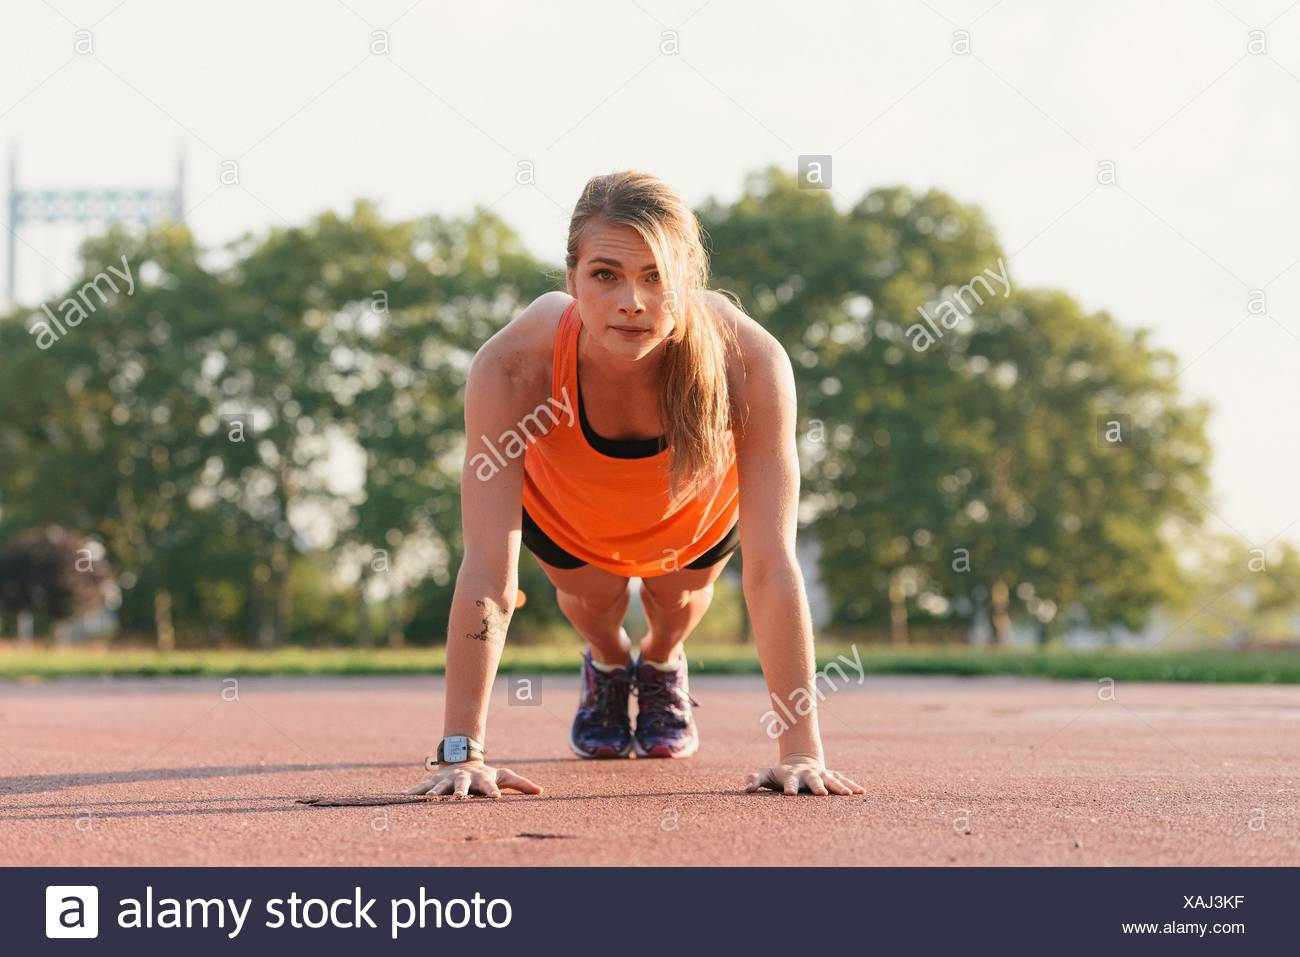 Young woman working out, doing press-ups, outdoors - Stock Image